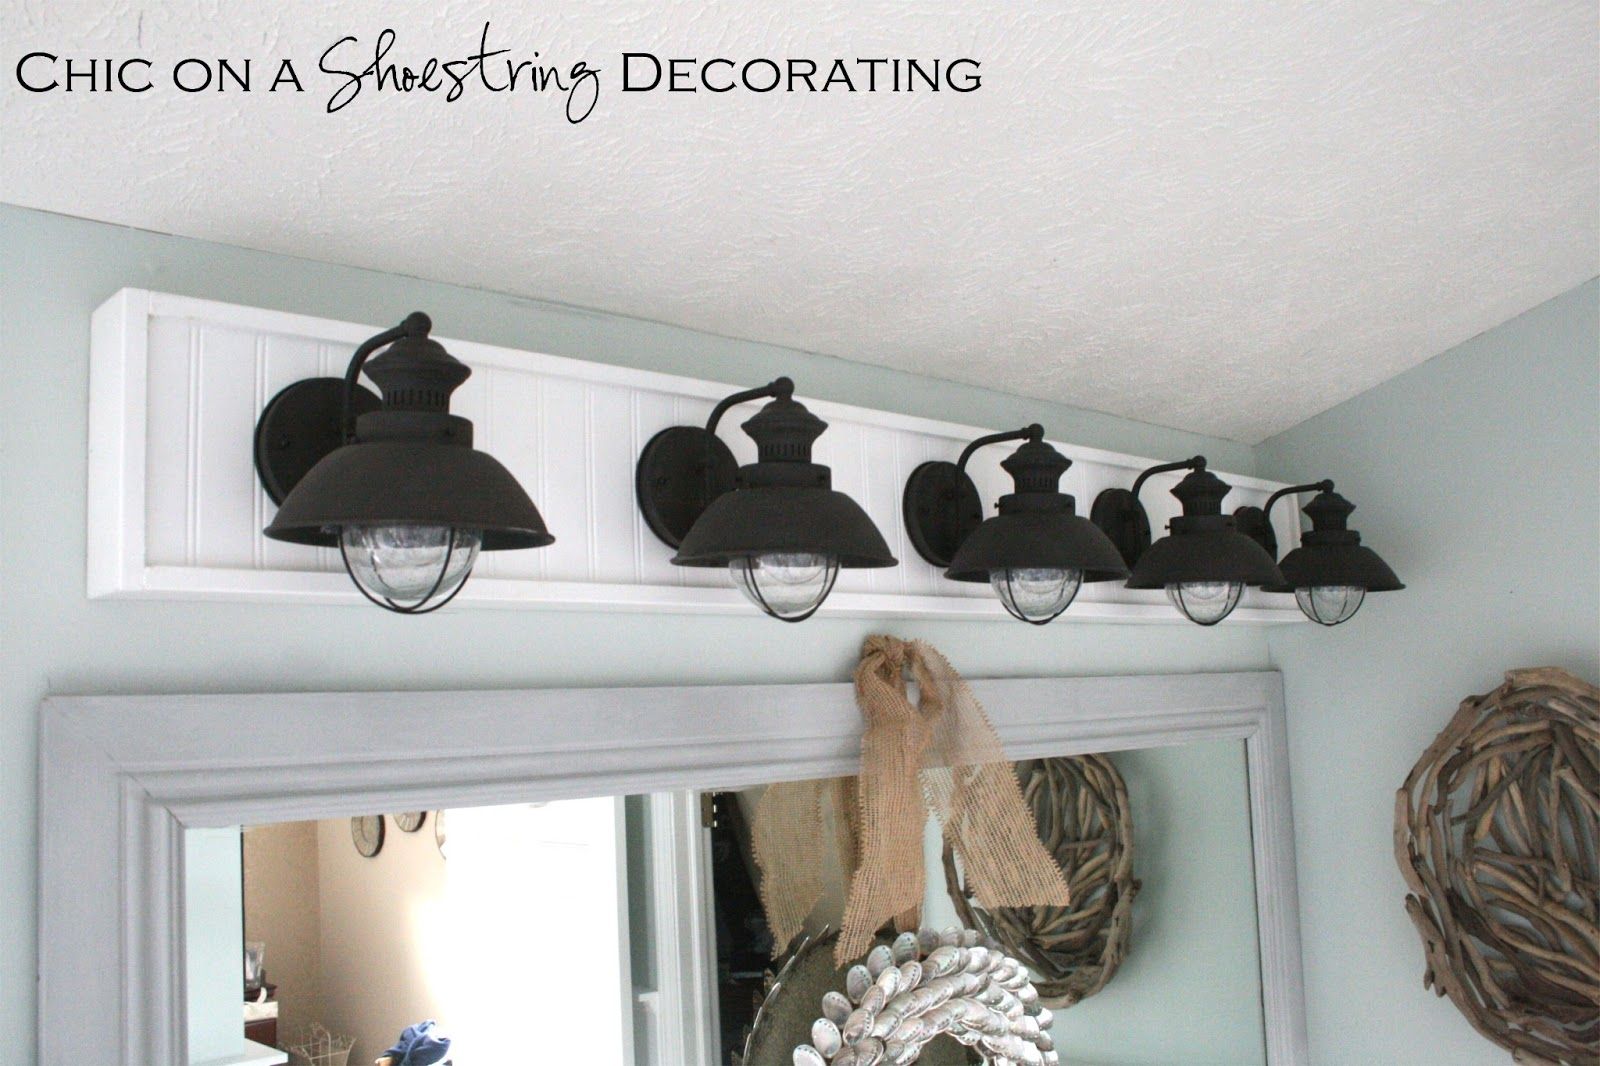 Cheap Bathroom Lighting Fixtures   Chic On A Shoestring Decorating How To  Build A Bathroom Light